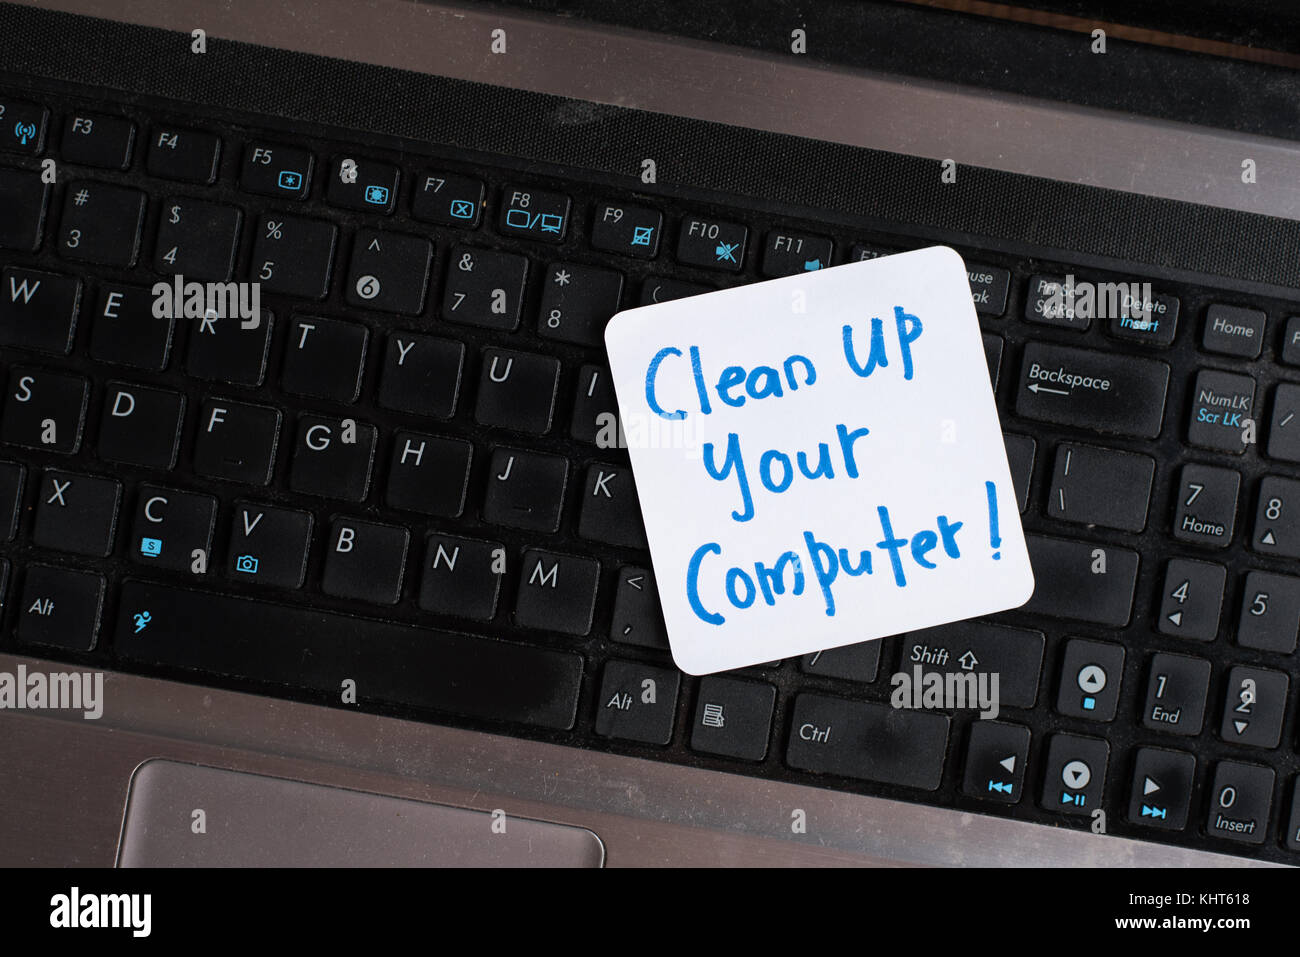 how to clean up your laptop